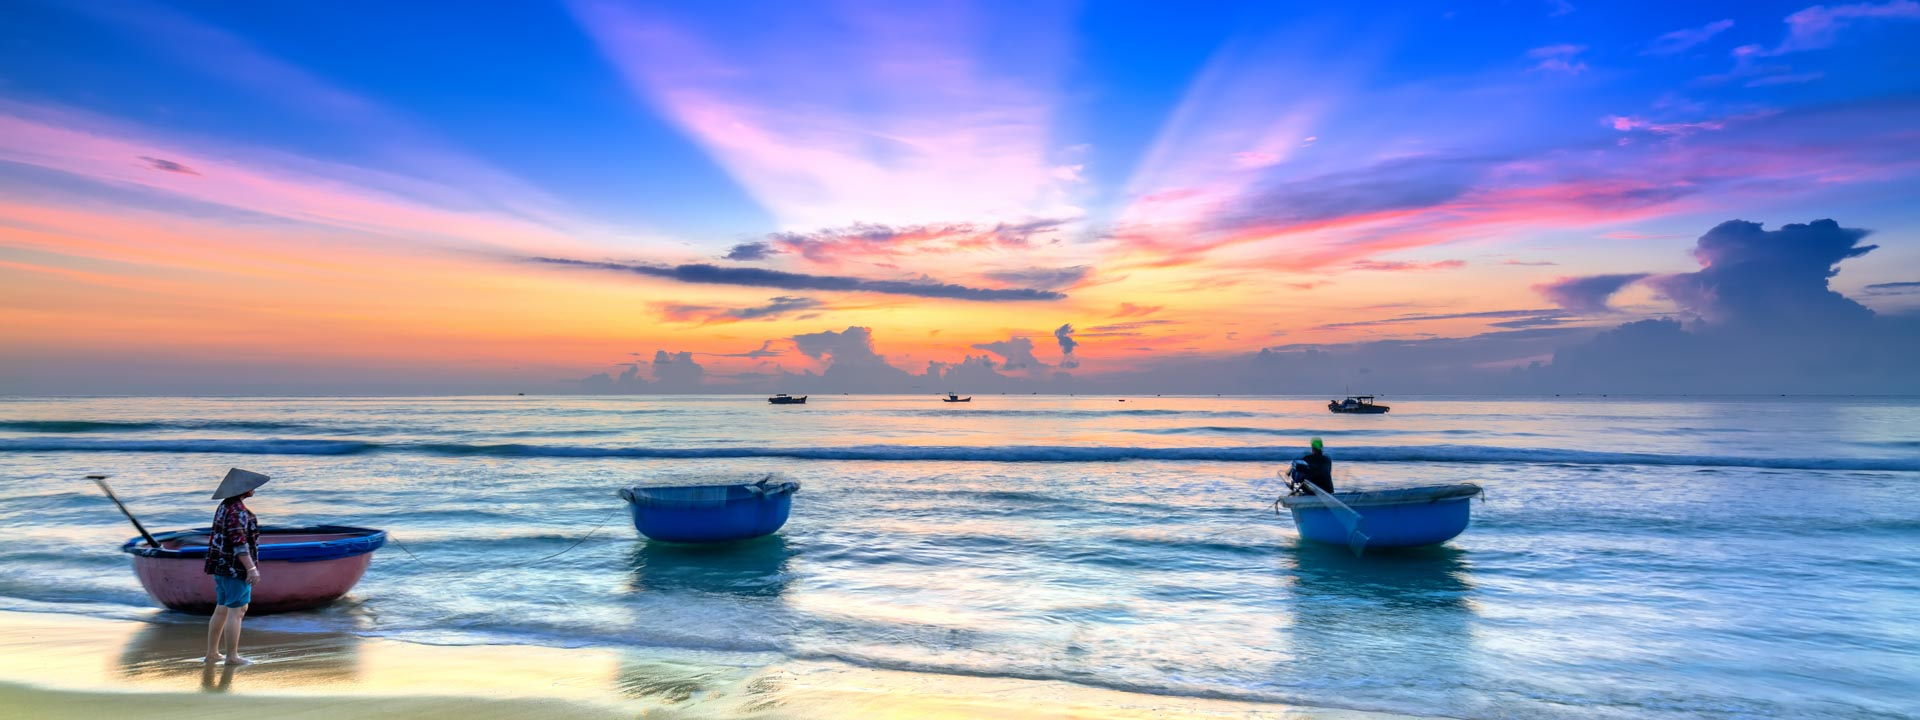 Vung Tau Day Trip Escape From Ho Chi Minh City